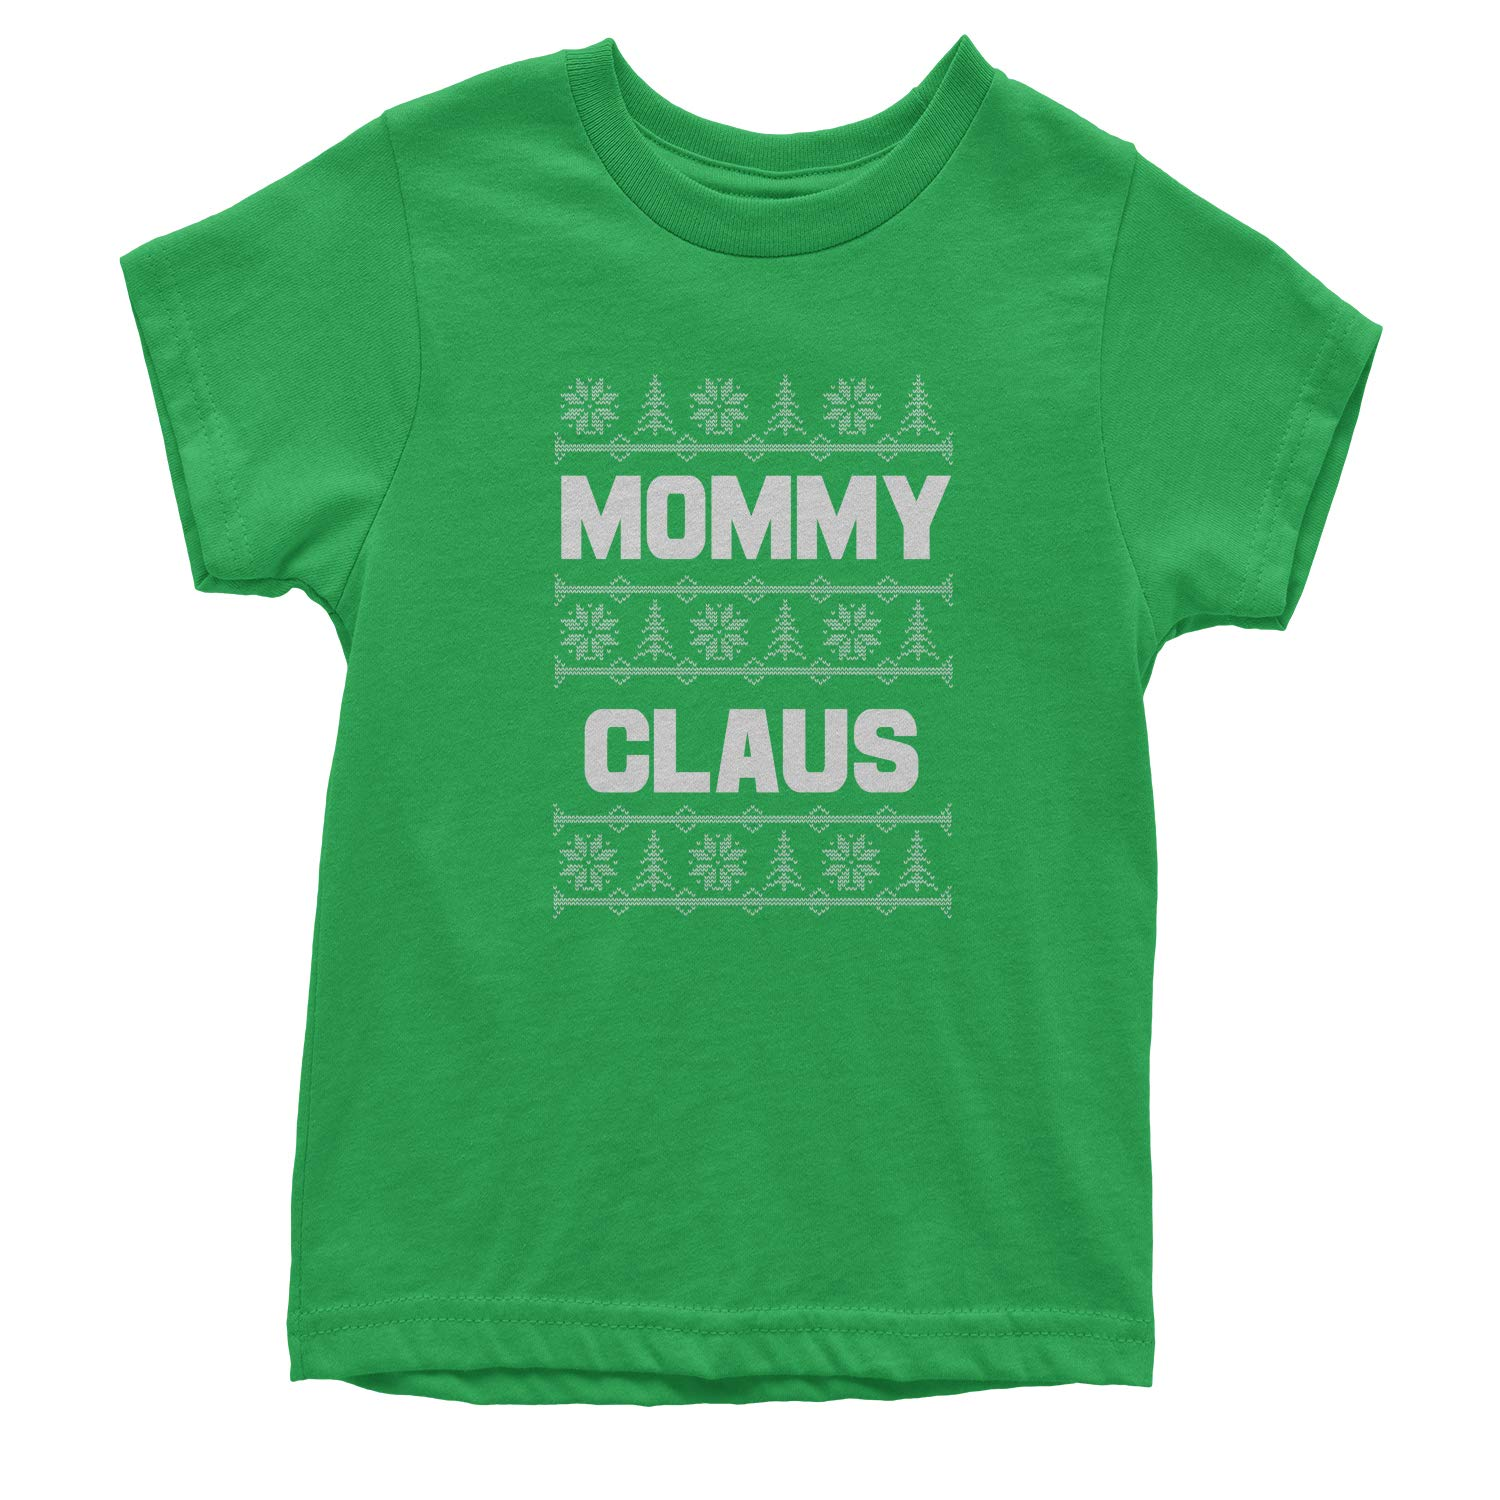 Motivated Culture Mommy Claus Youth T-Shirt